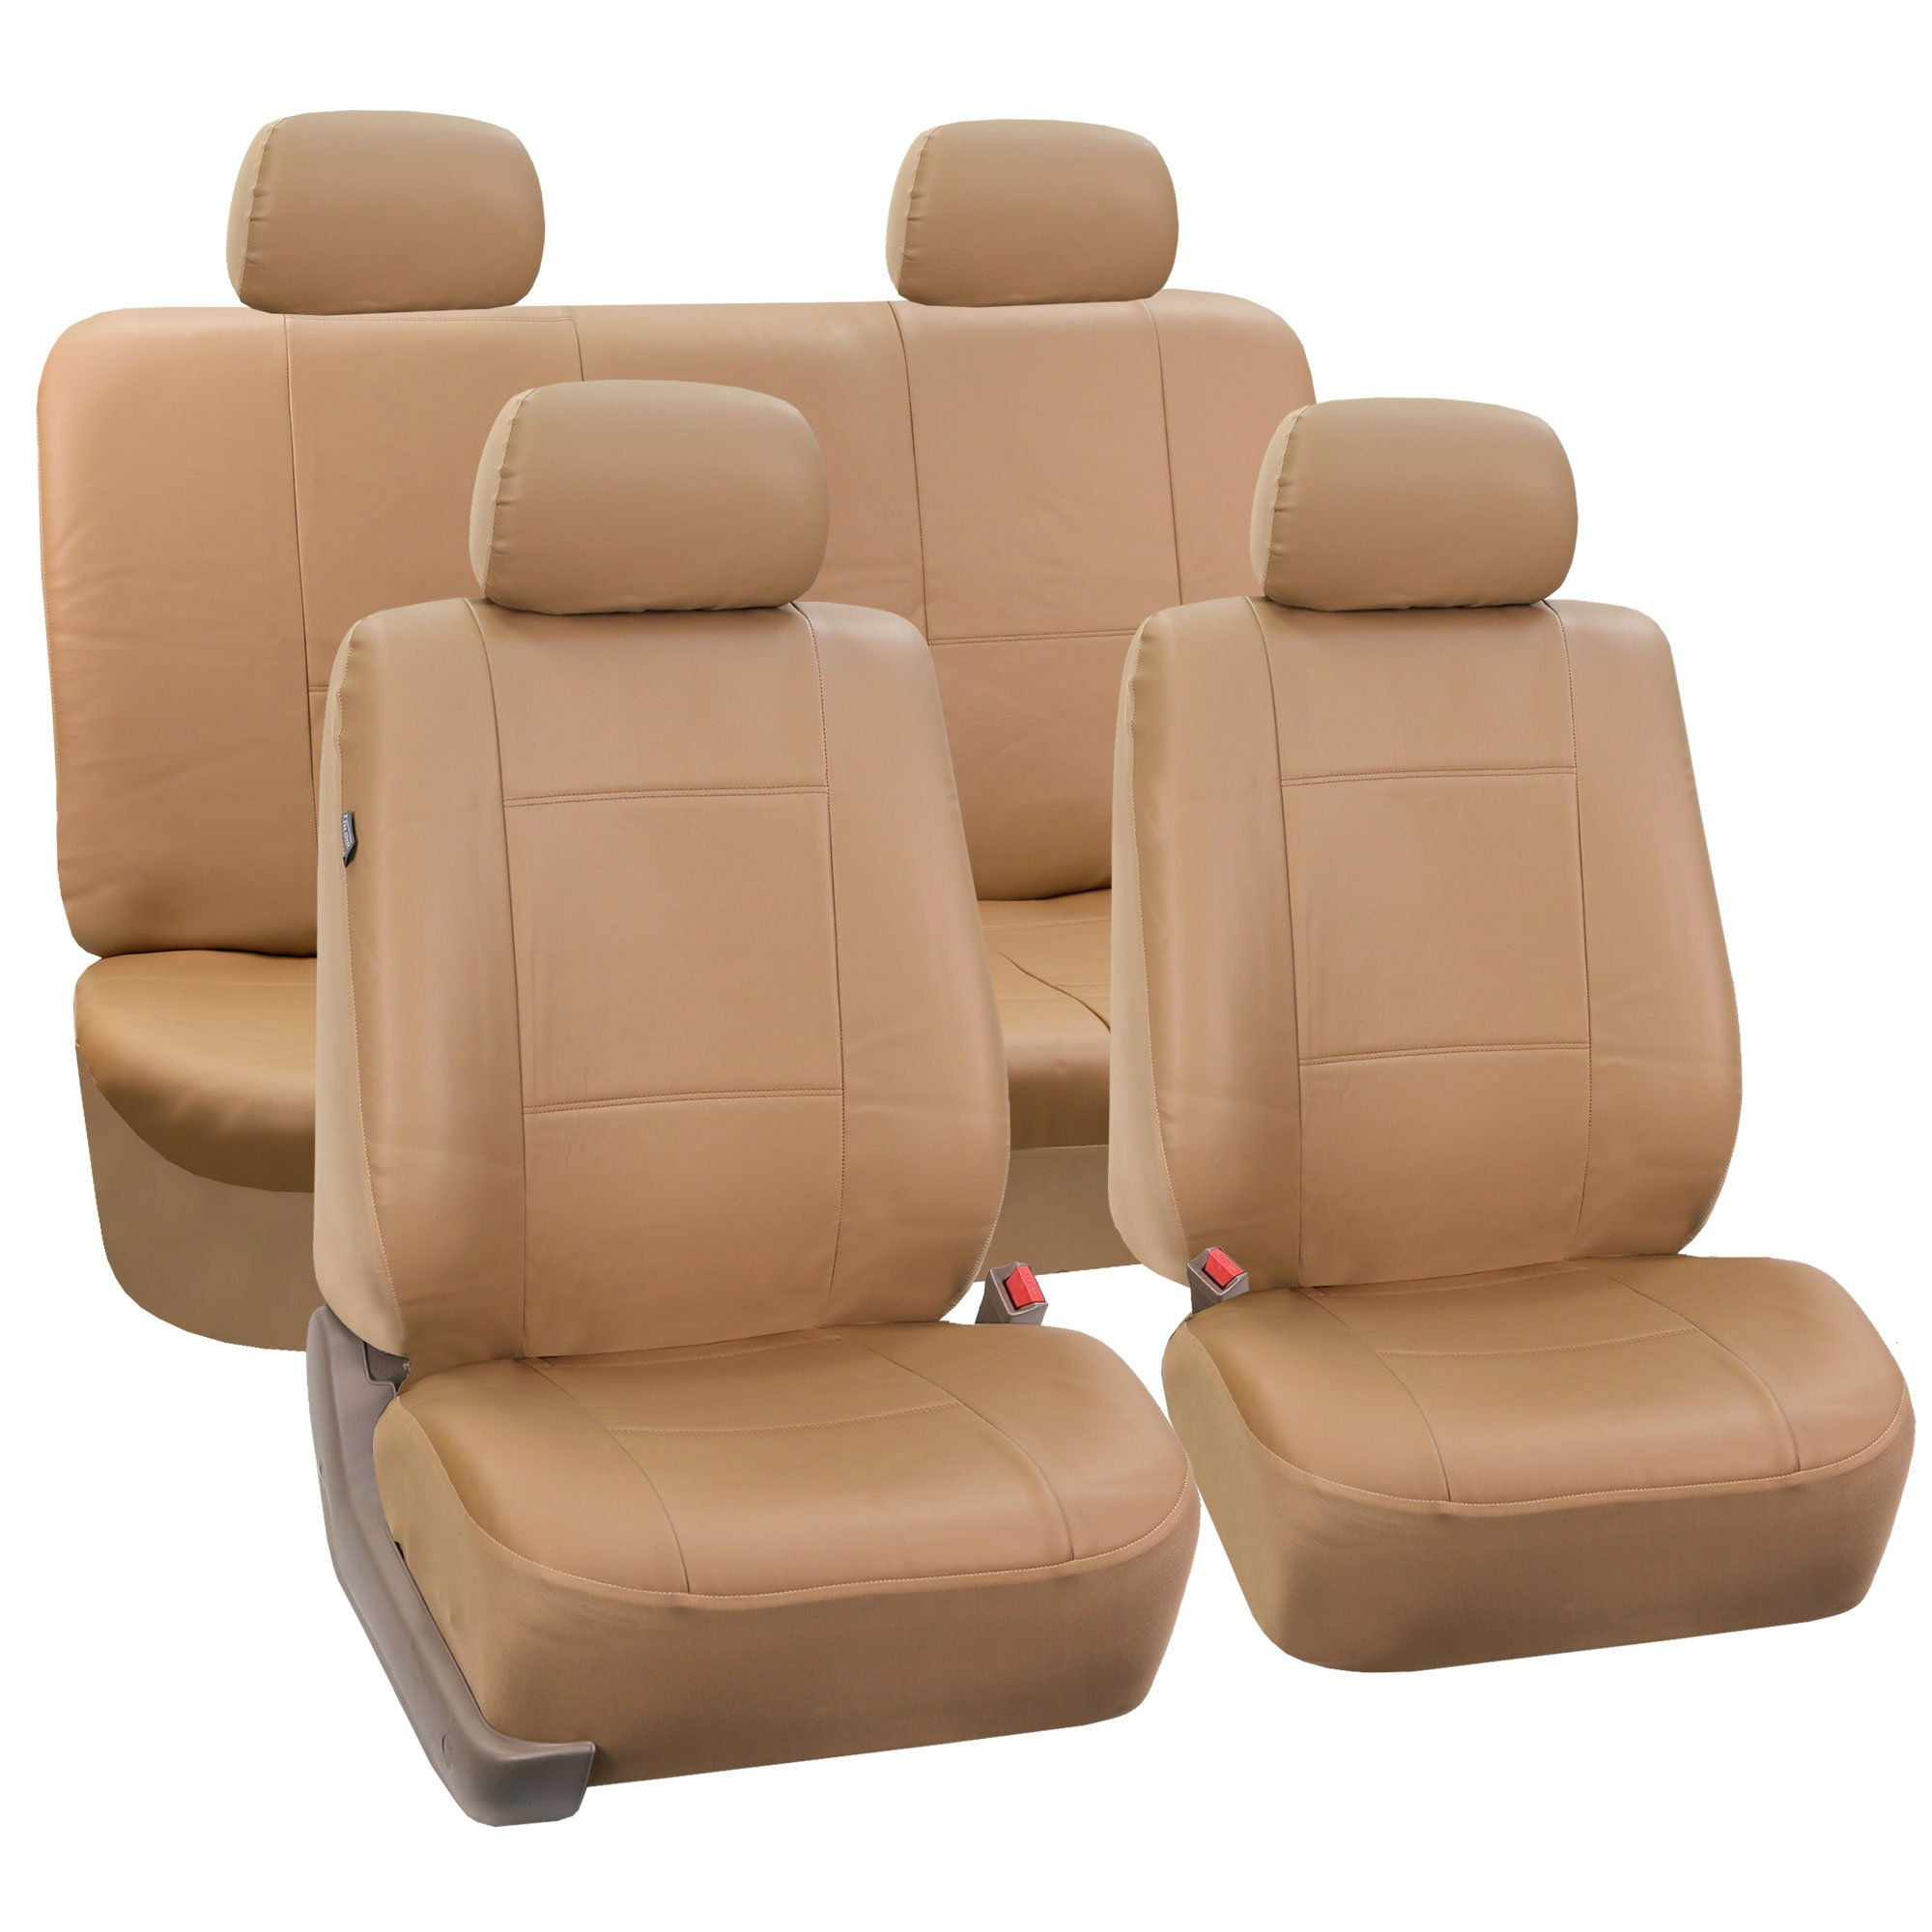 FH-PU001114 PU Leather Car Seat Covers Solid Tan color